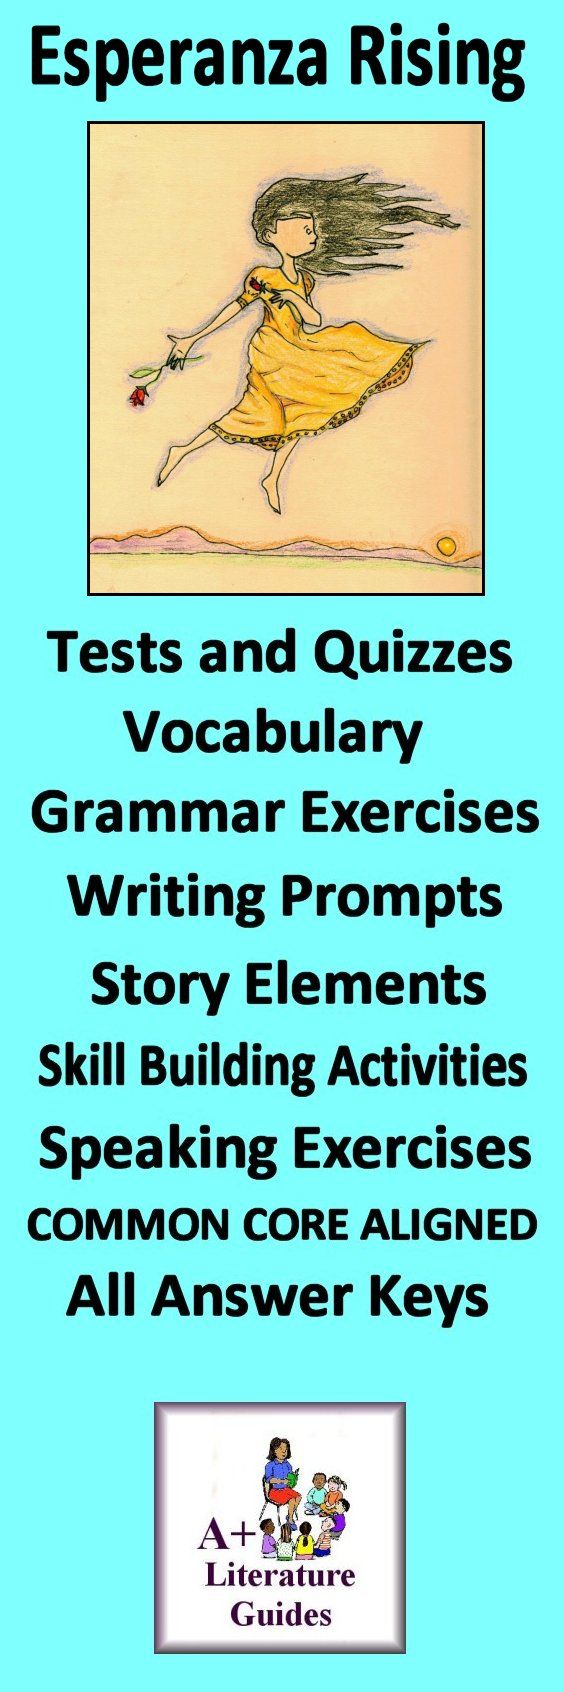 This is an 110 page complete Literature Guide for the novel, Esperanza Rising by Pam Munoz Ryan. Put away boring test prep, and teach the five Common Core areas of Language Arts - Reading Informational, Reading Literature, Writing, Speaking and Listening, and Language - using this Literature Guide and a book that students will love!